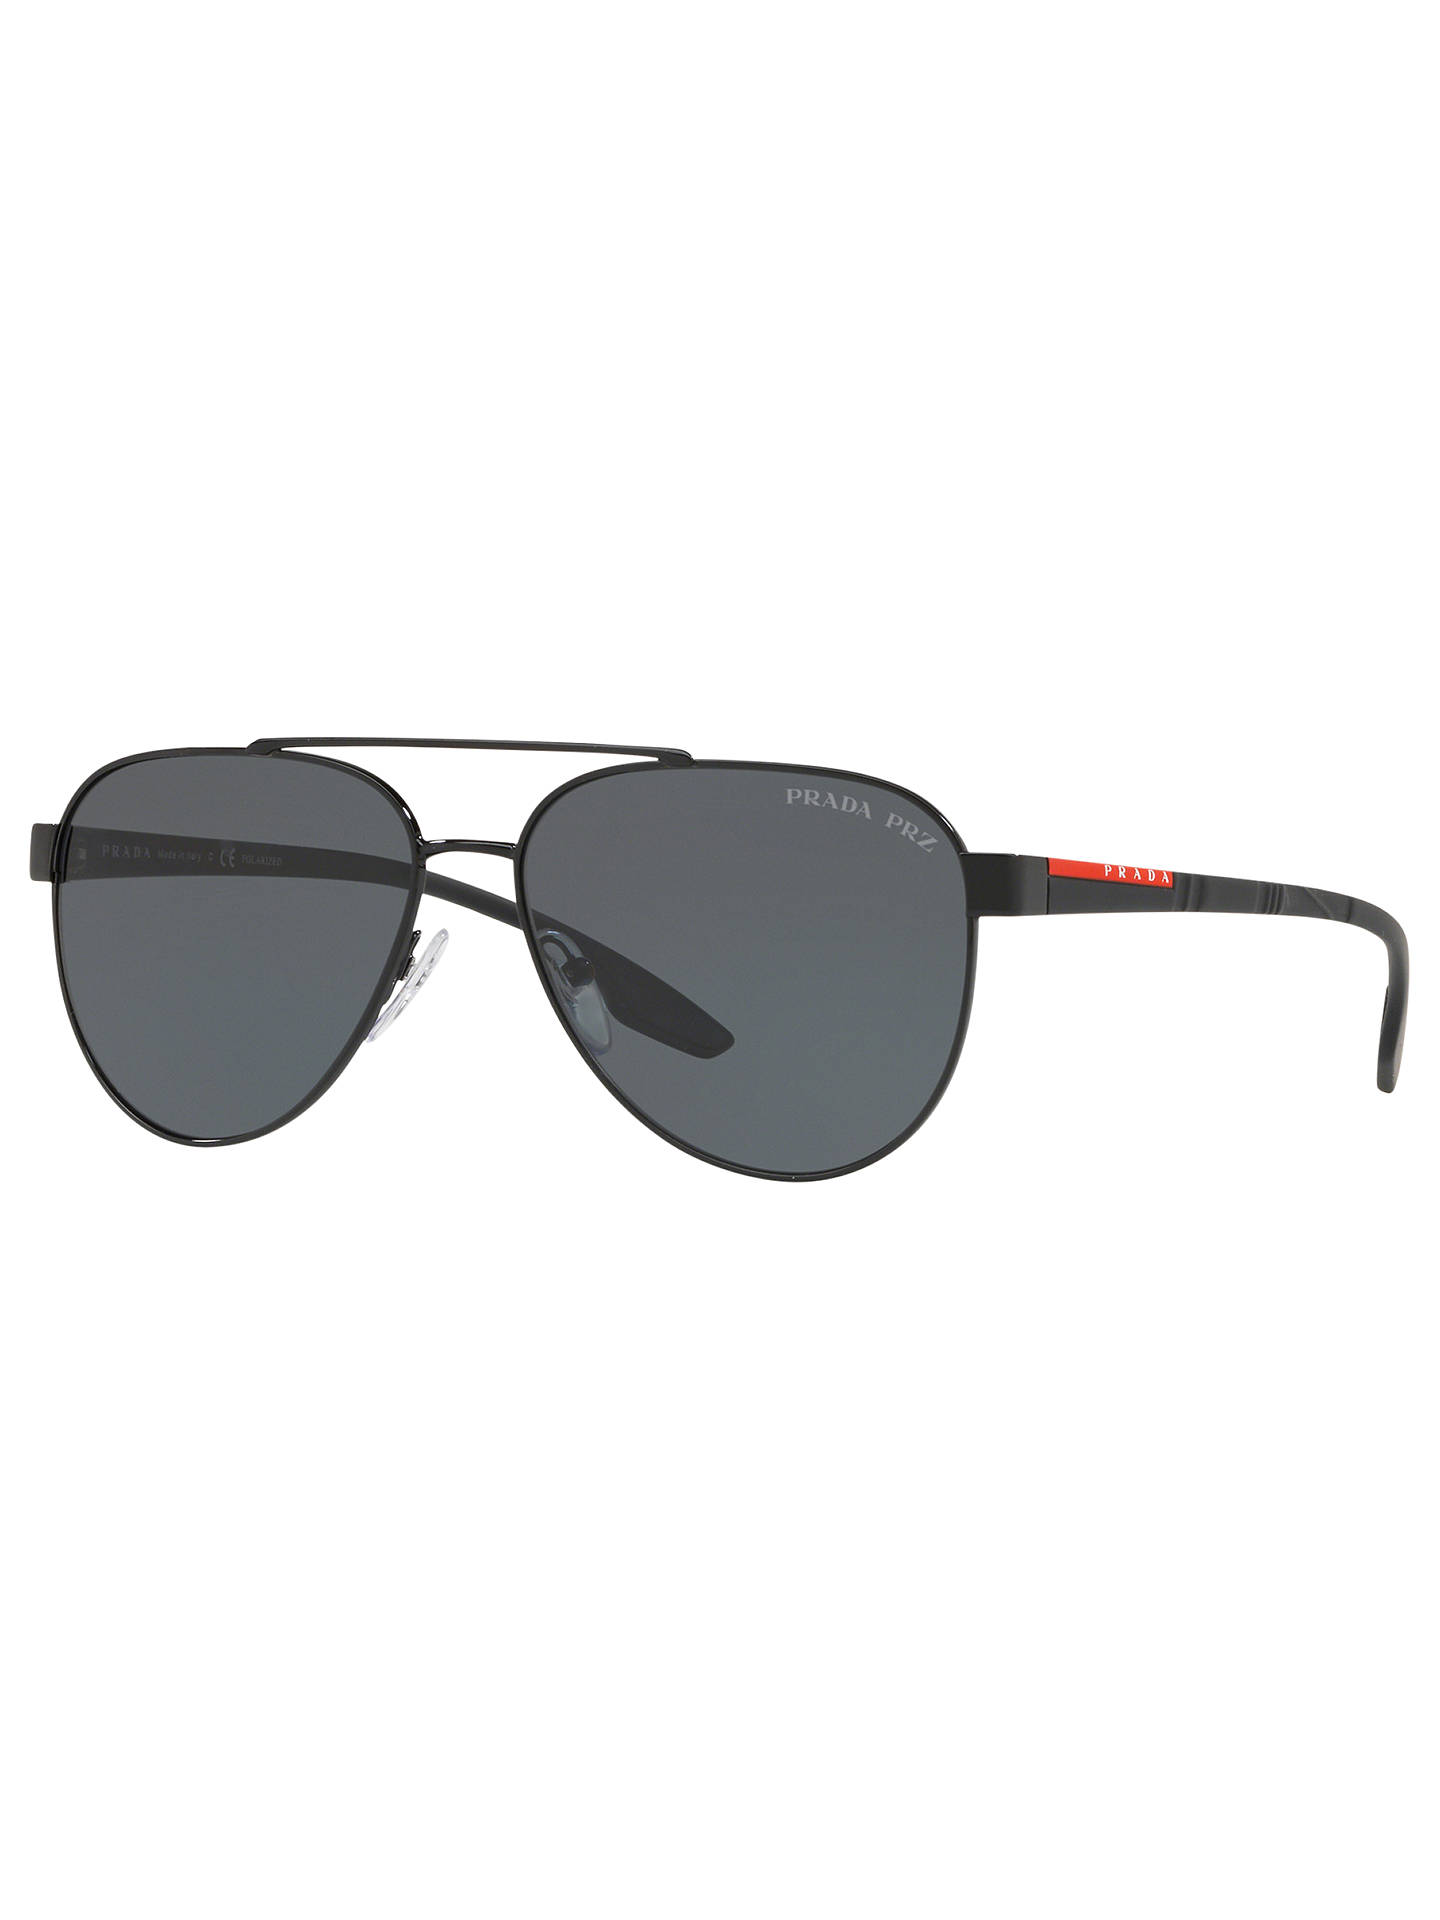 a74e4ed428 Prada Linea Rossa PS 54TS Men s Polarised Aviator Sunglasses at John ...